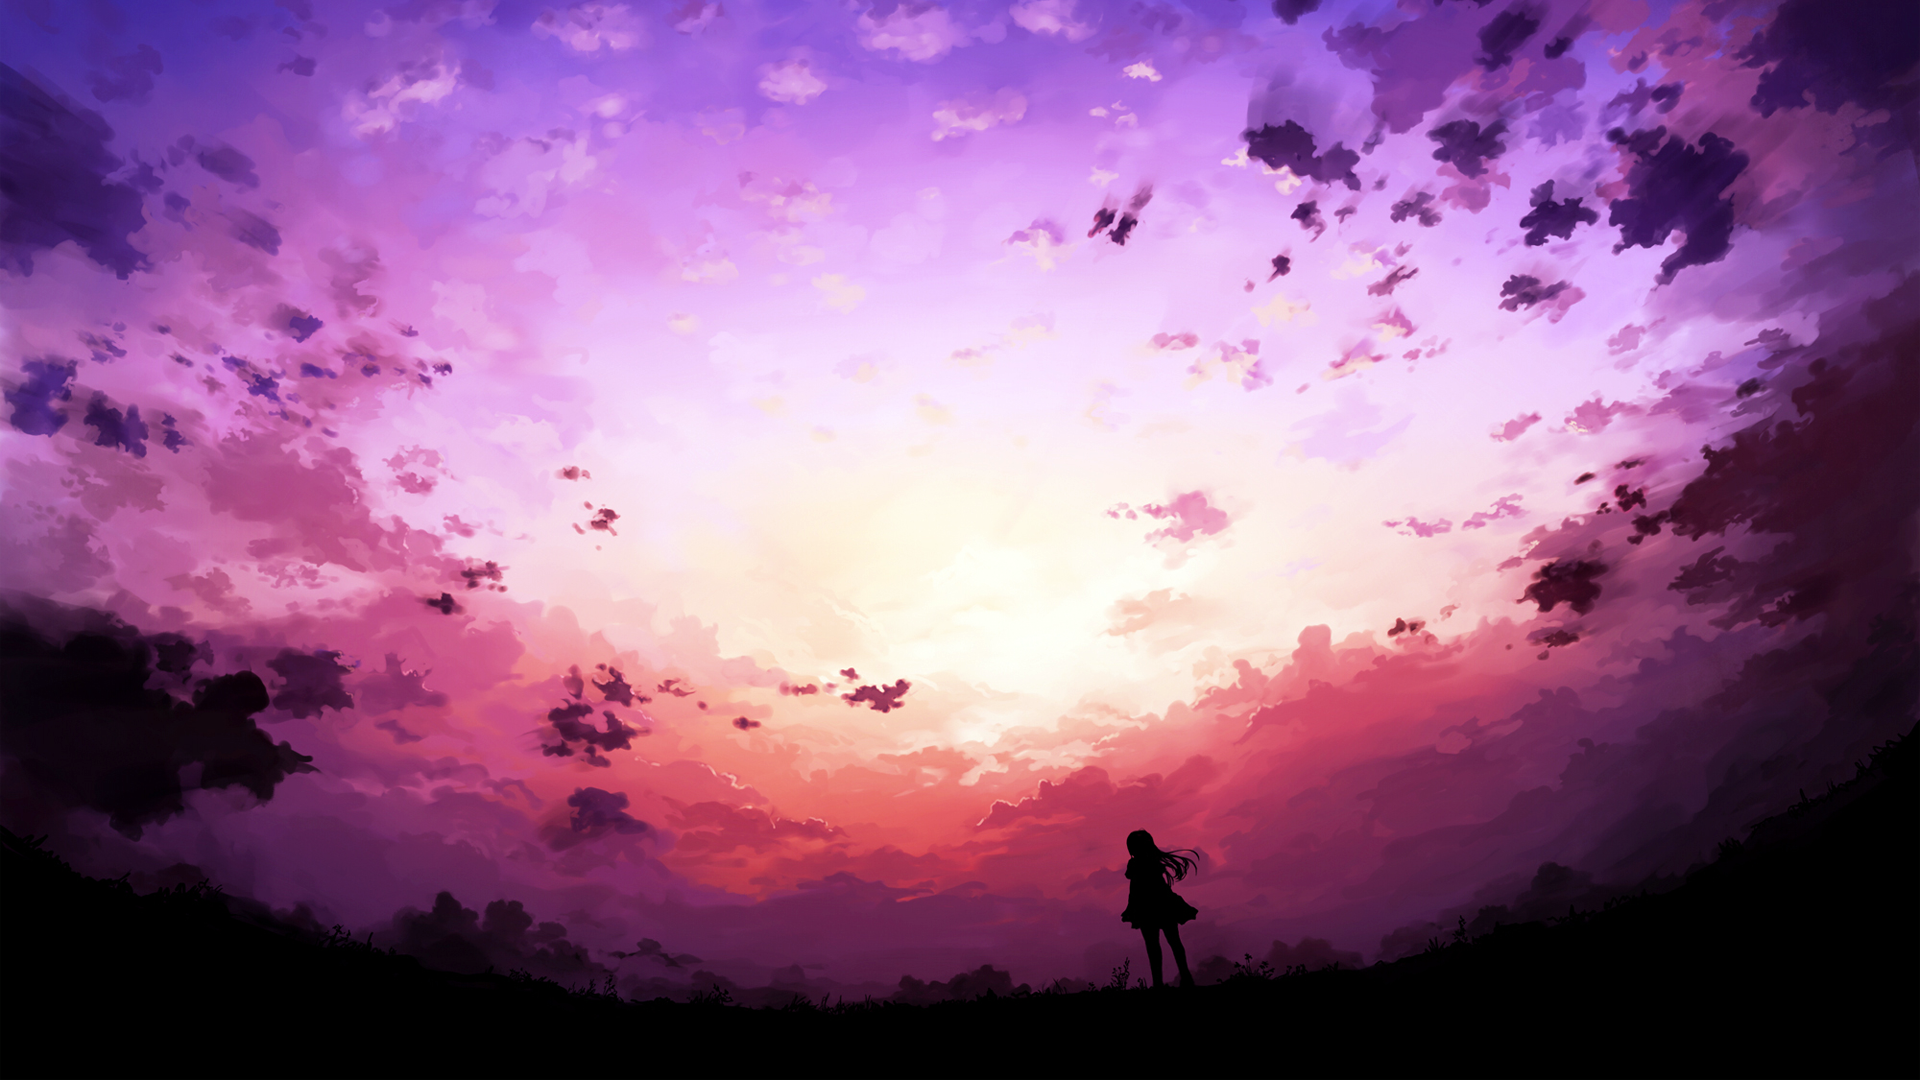 Anime 1920x1080 fantasy art anime girls sky anime